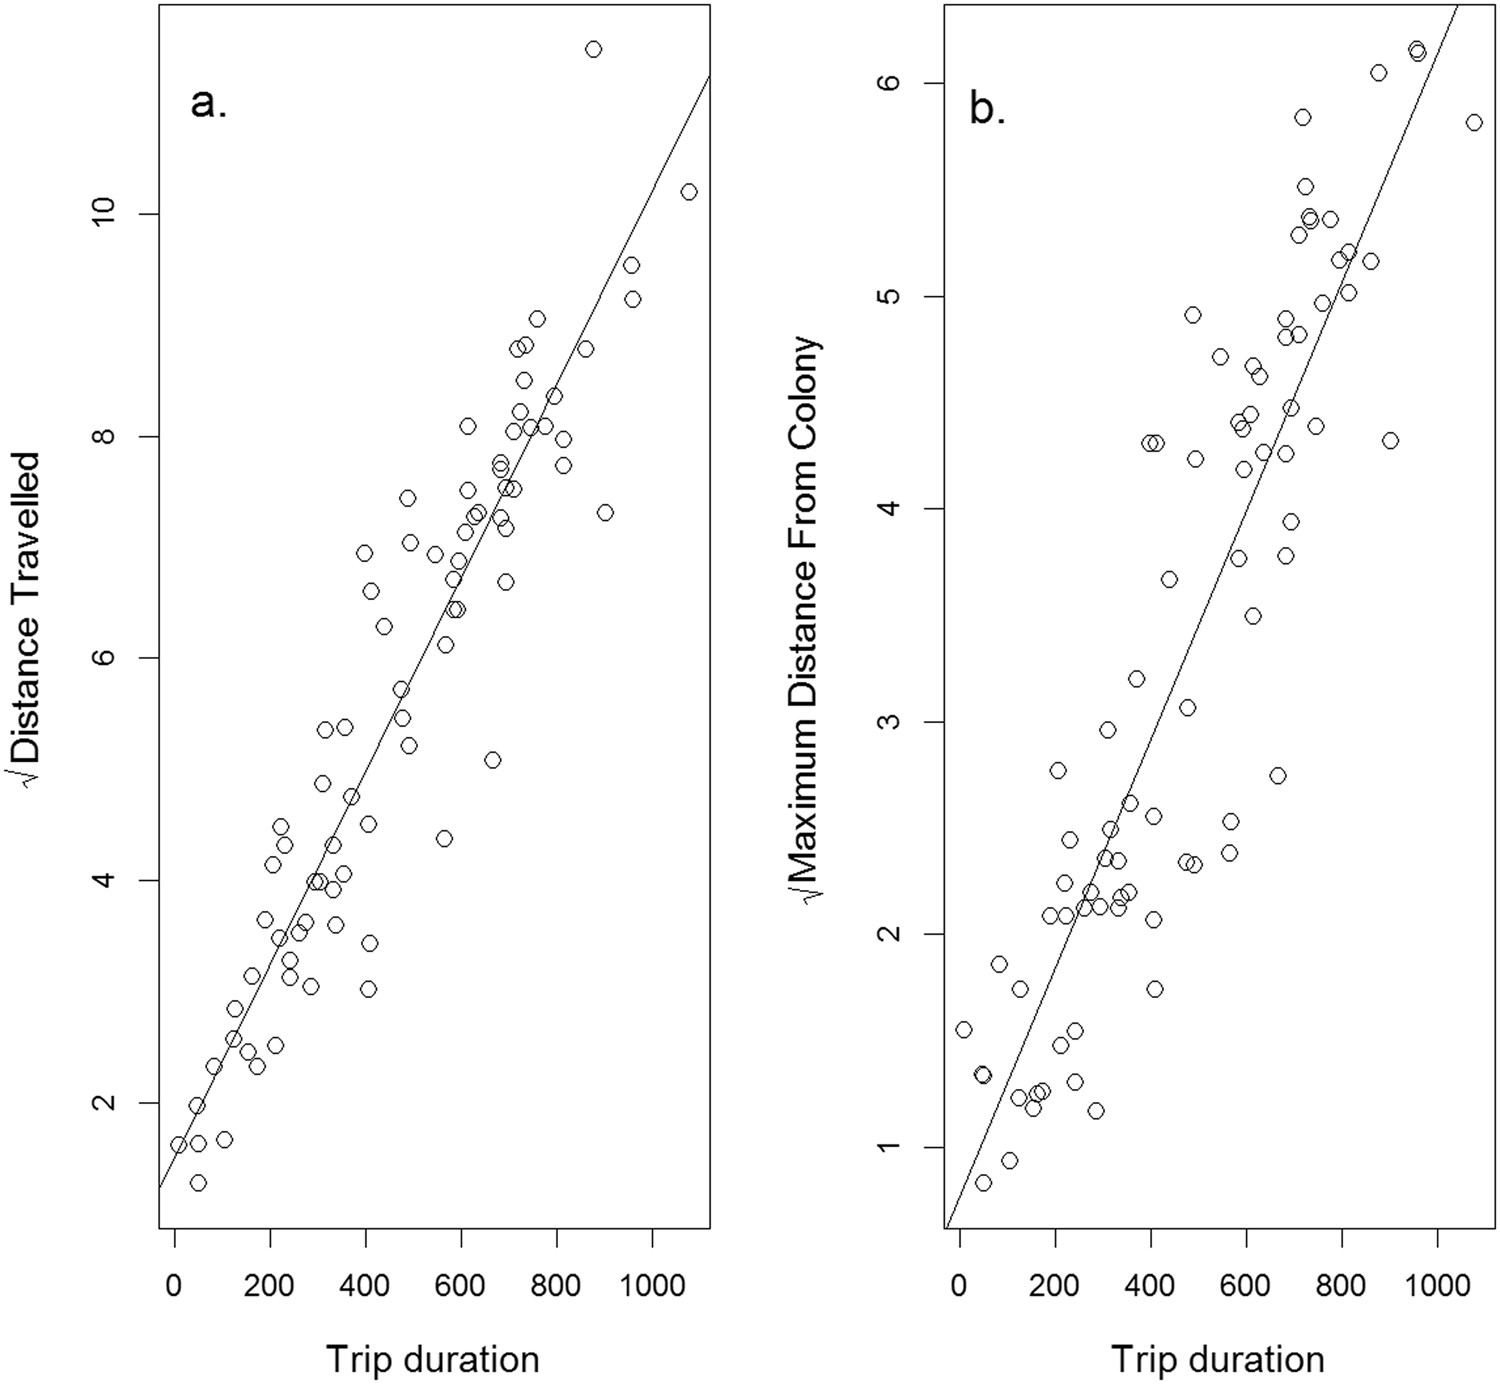 Dietary divergence is associated with increased intra